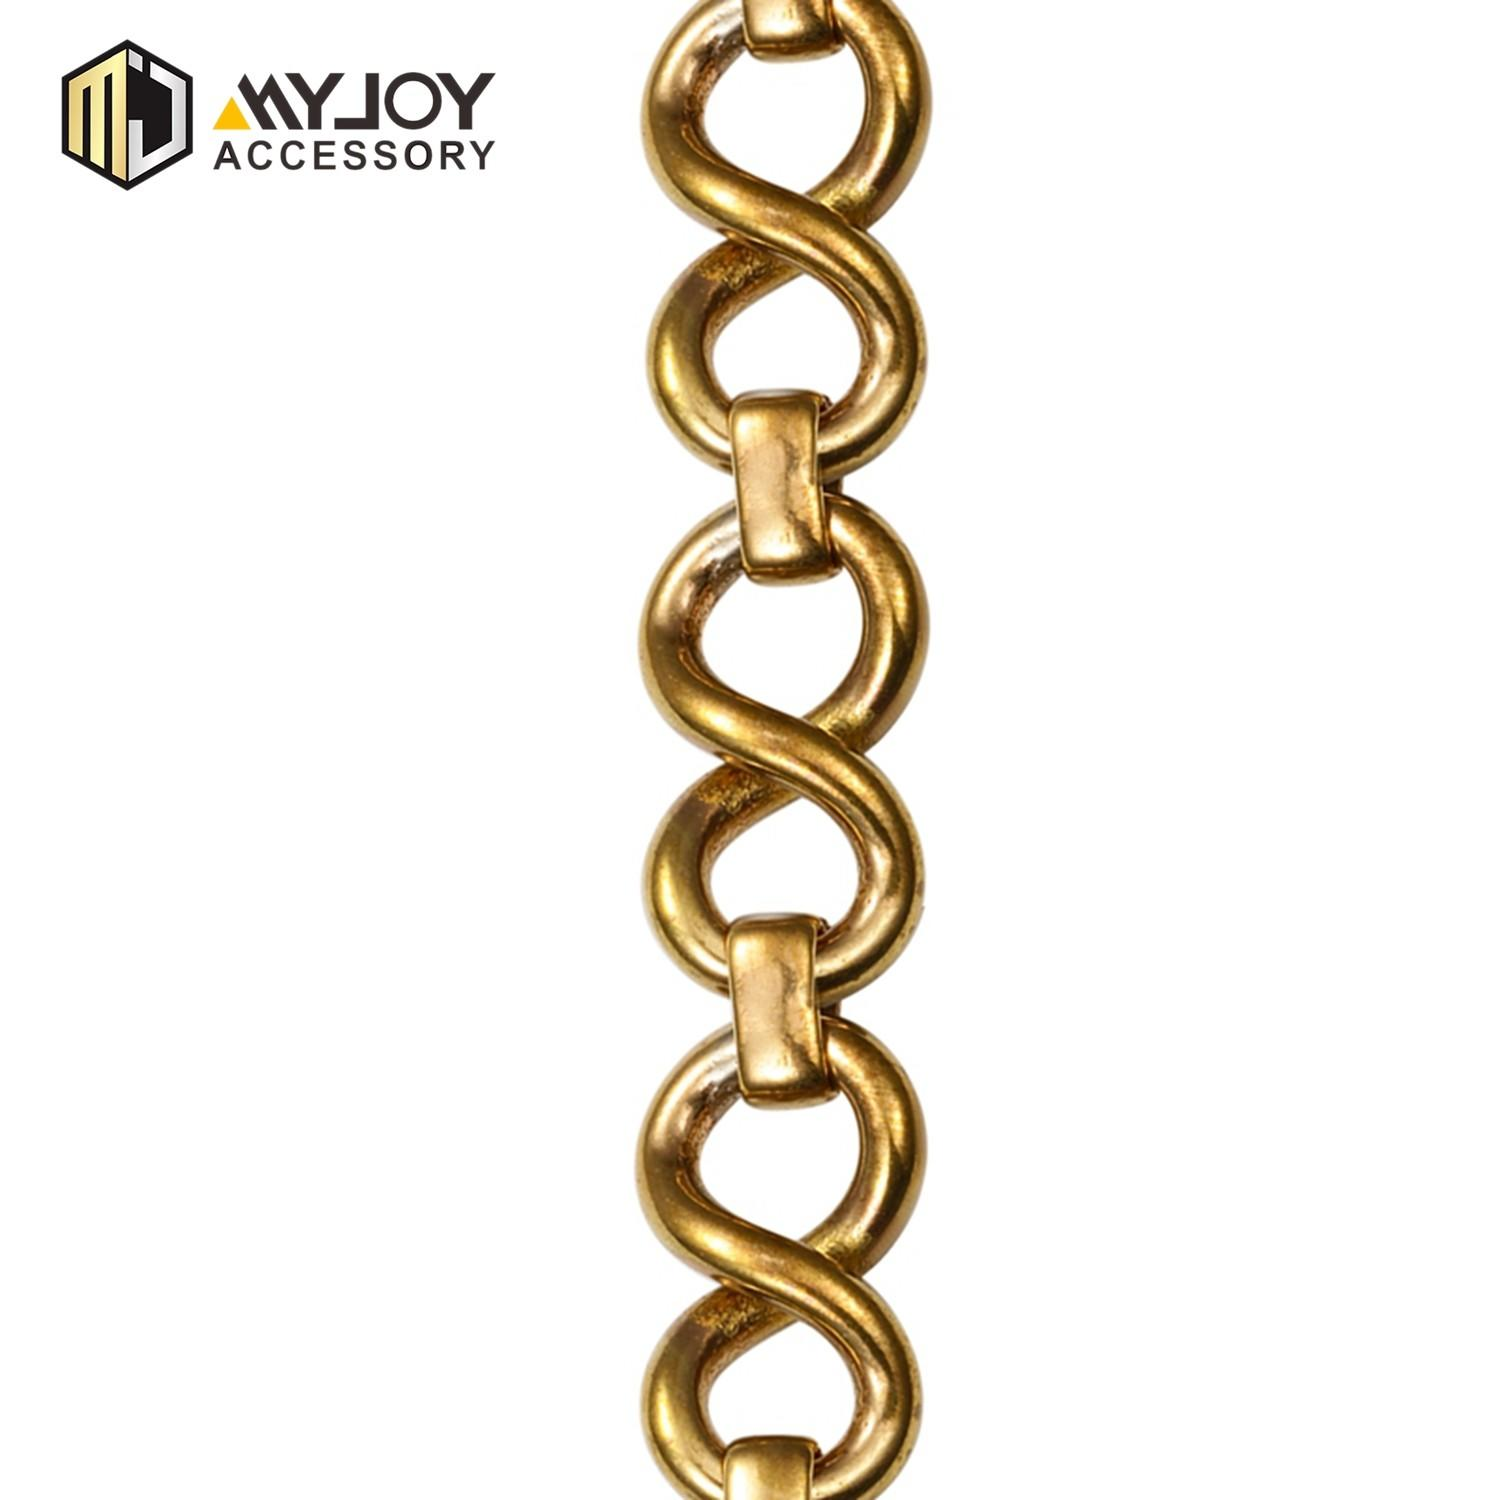 MYJOY Latest strap chain Supply for handbag-1